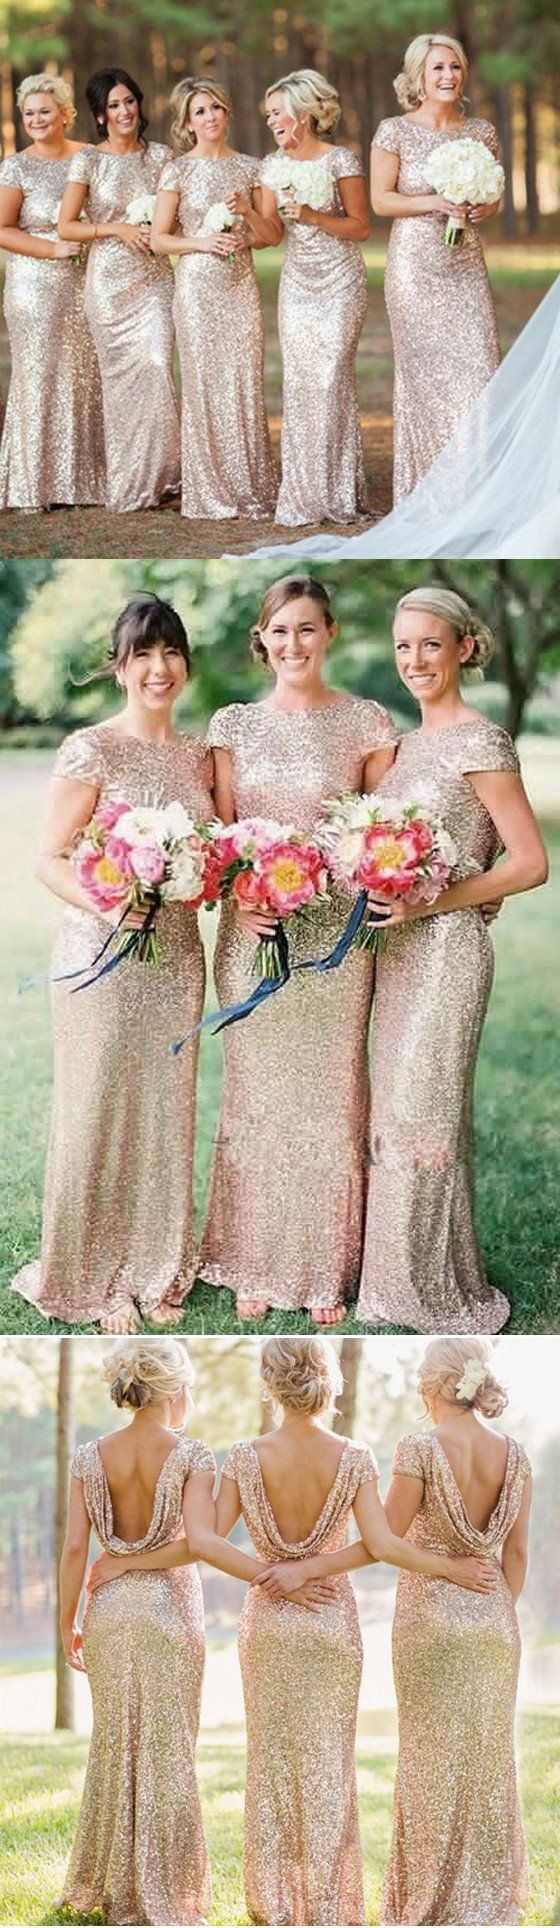 Best Sale Cap Sleeve Gold Sequin Bridesmaid Dress, Mermaid Bridesmaid Dress The long bridesmaid dresses are fully lined, 4 bones in the bodice, chest pad in the